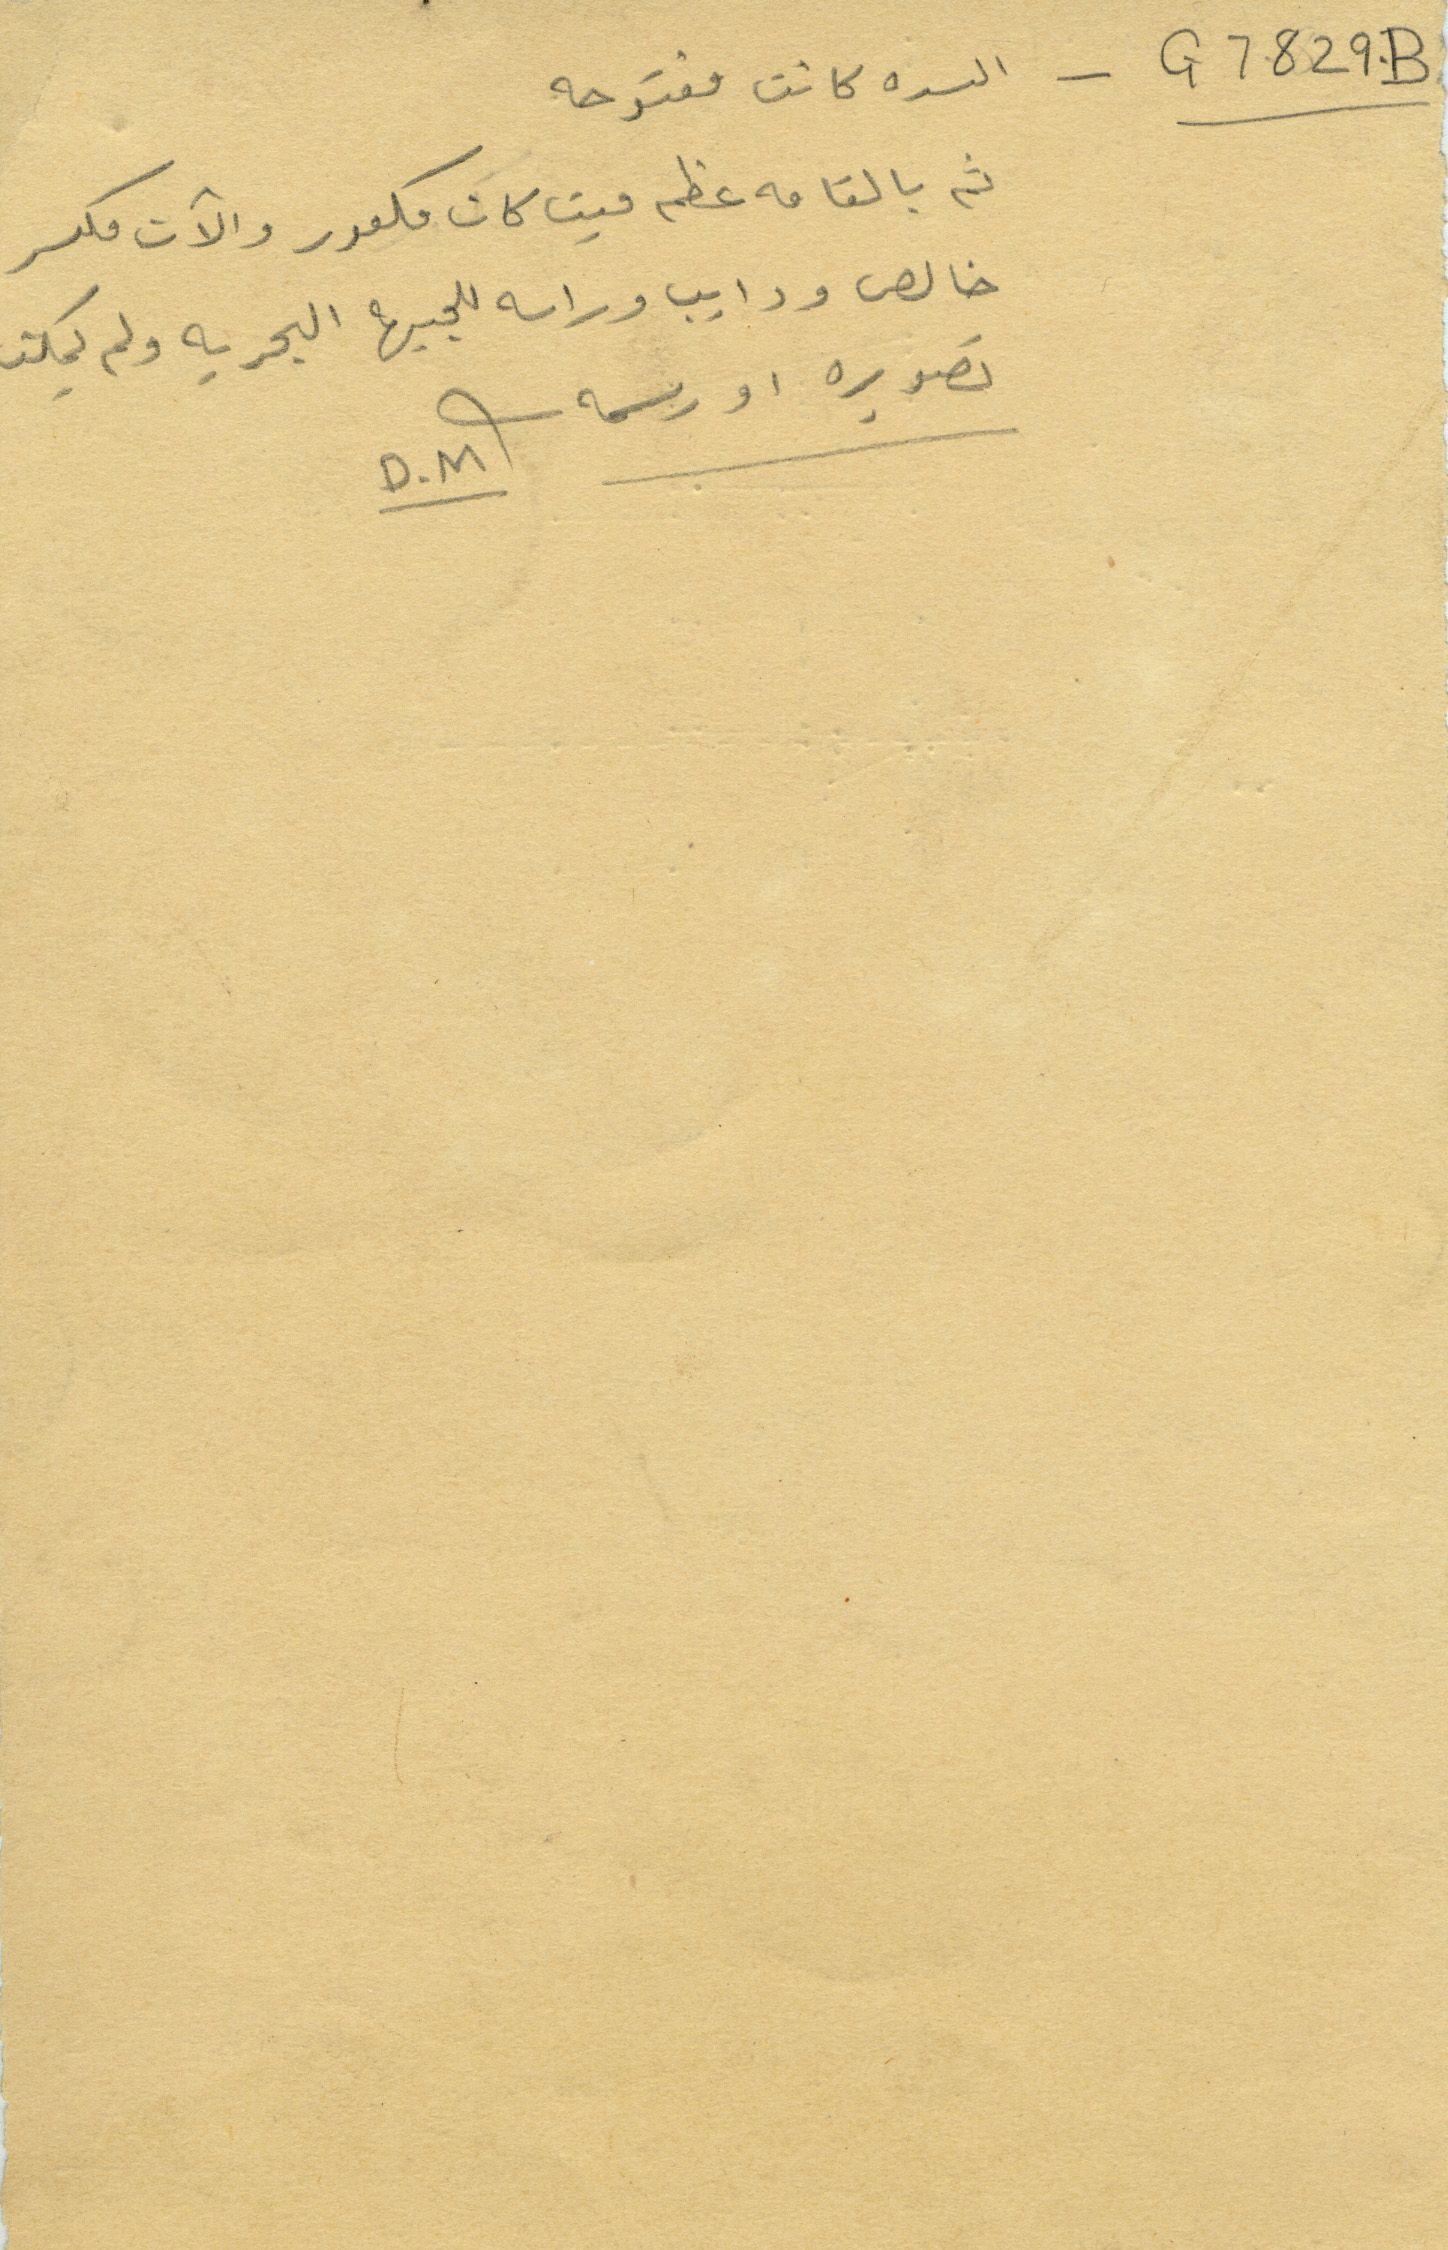 Notes: G 7829, Shaft B, notes (in Arabic)